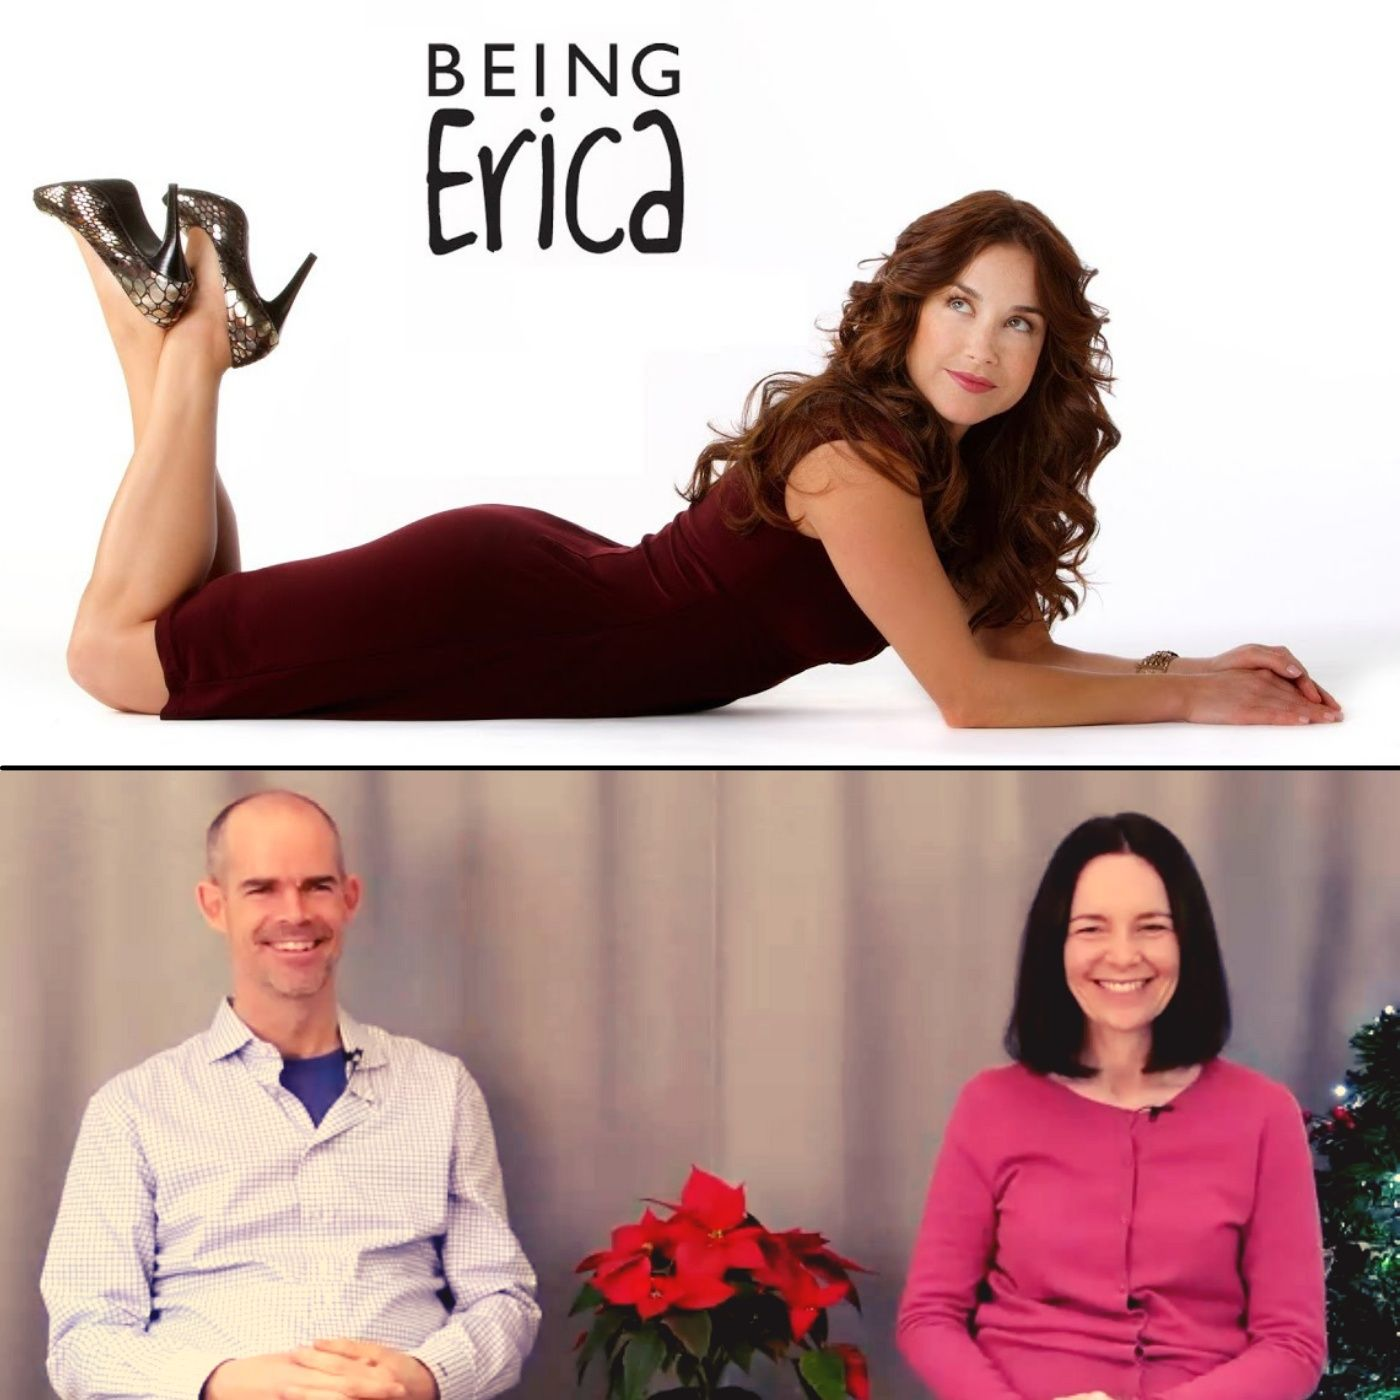 """""""Being Erica"""" Tv-Episode Session with Emily Alexander and Jason Warwick - """"Celebration of Illumination - The Joy of Time's End"""" Online Event"""